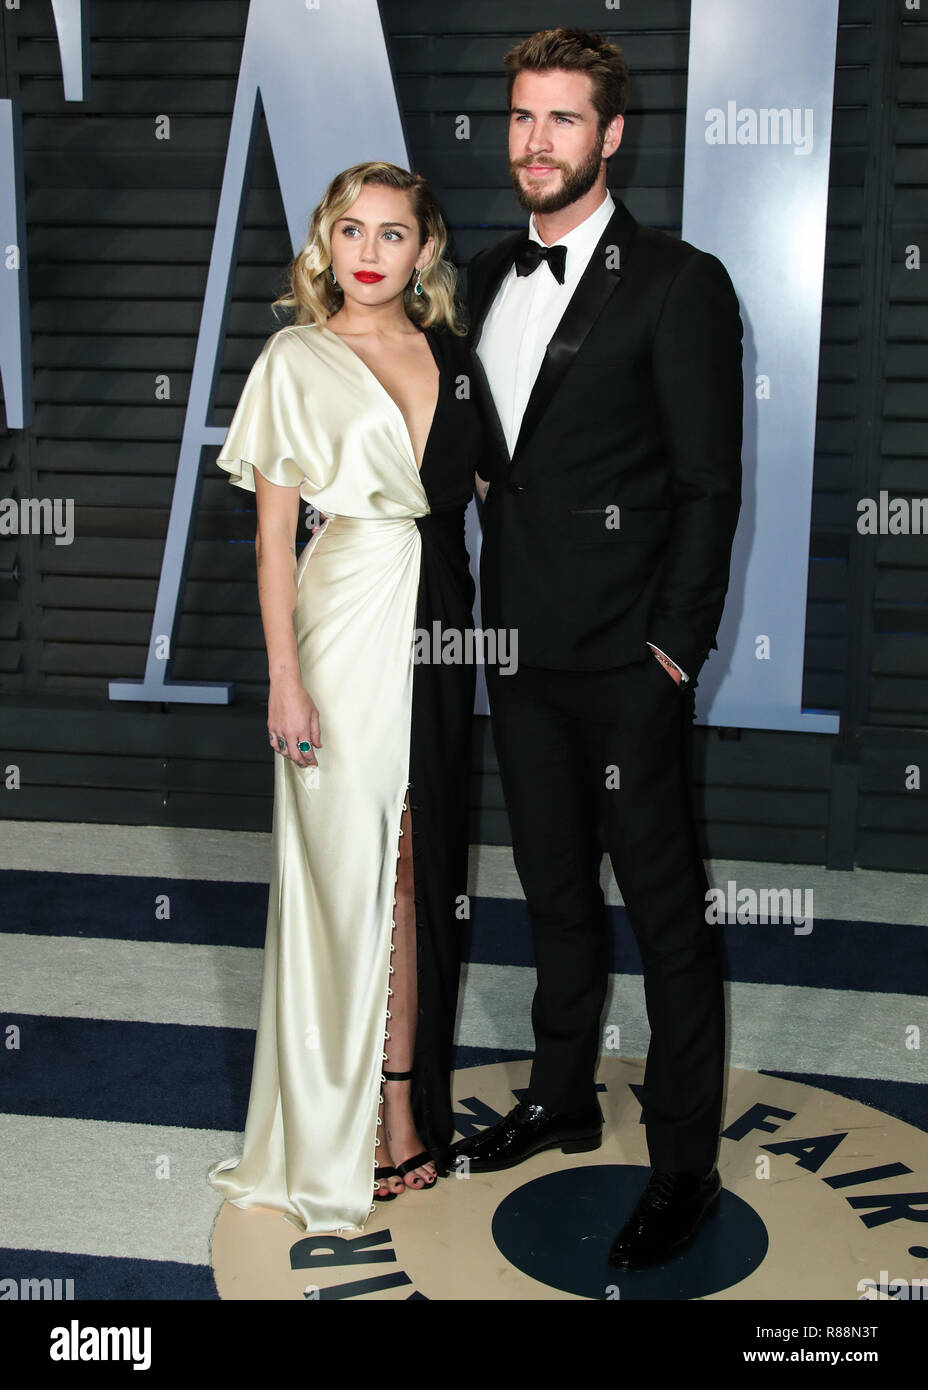 File Miley Cyrus And Liam Hemsworth Donate 500 000 To Emergency Relief After Losing Home In California